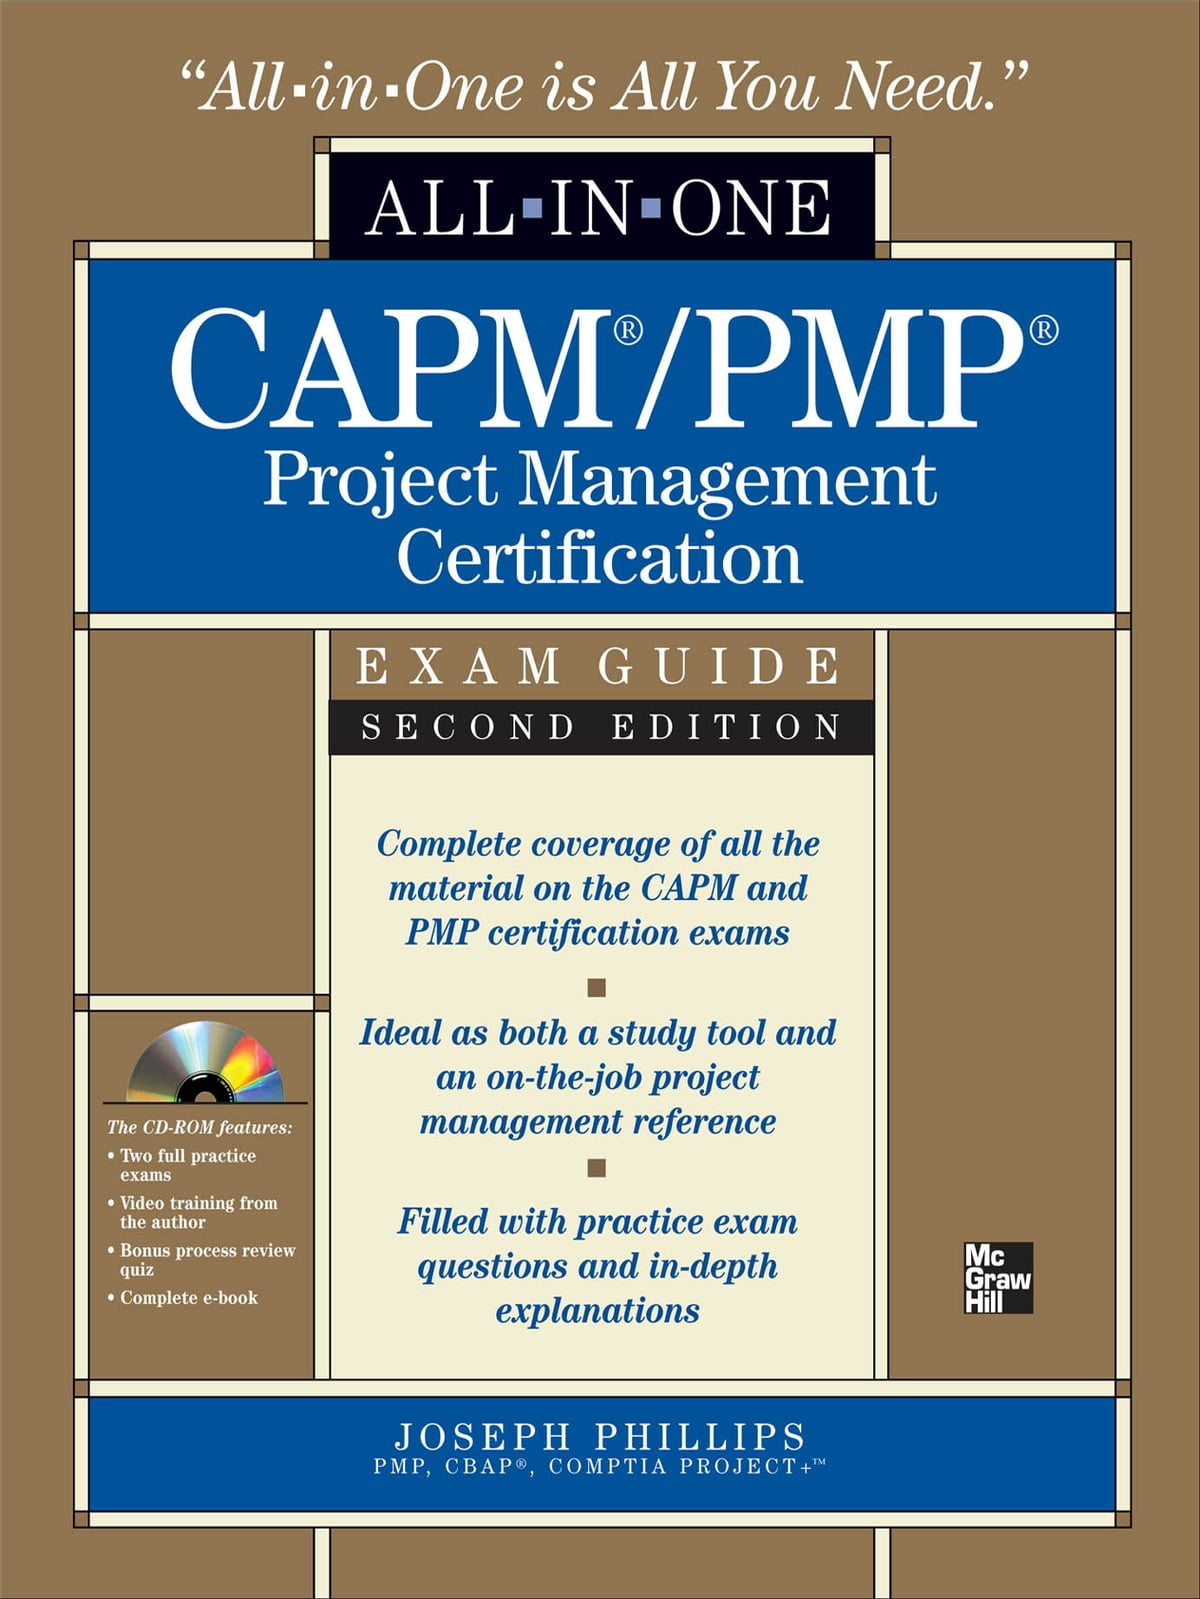 CAPM/PMP Project Management Certification All-in-One Exam Guide with  CD-ROM, Second Edition eBook by Joseph Phillips - 9780071633000 | Rakuten  Kobo